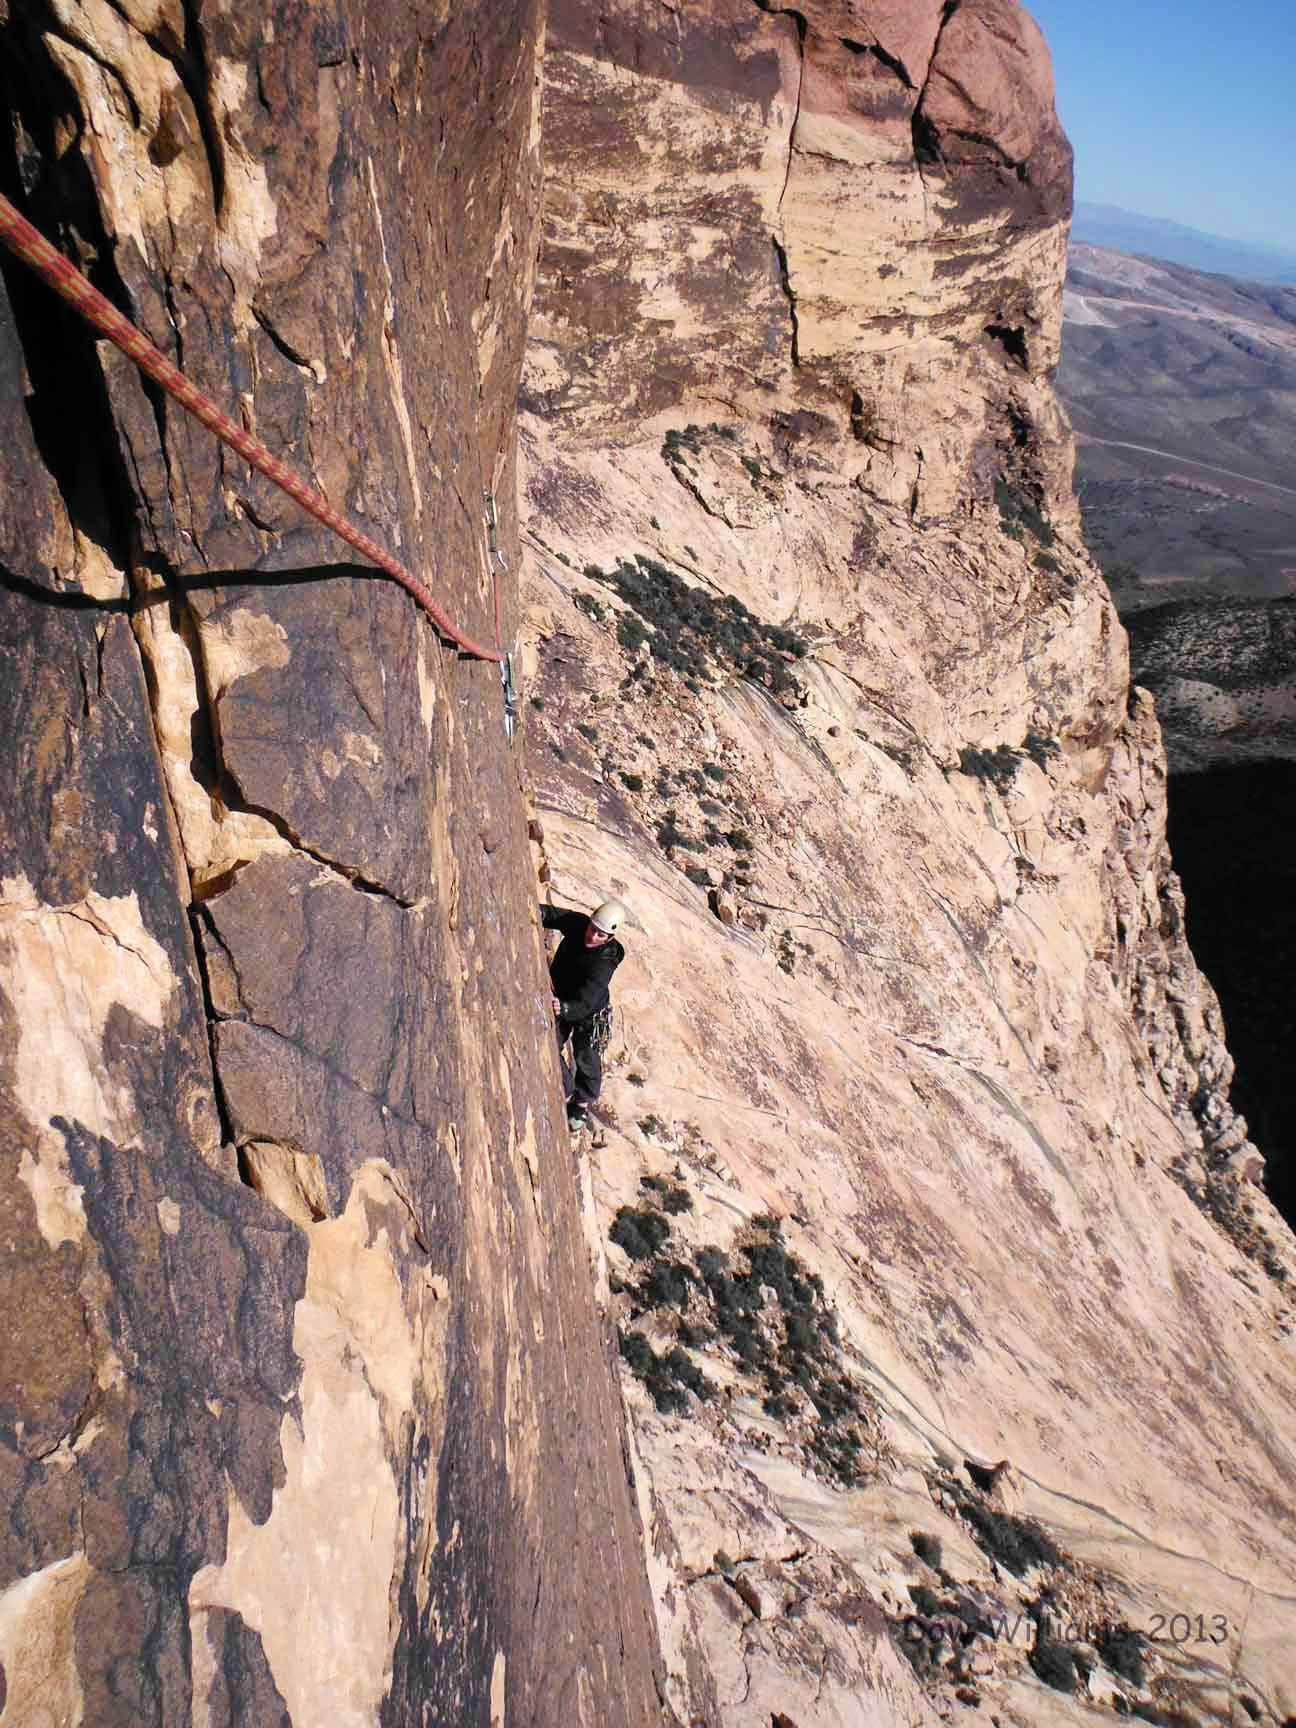 Ringtail, 5.10d, 5 Pitches